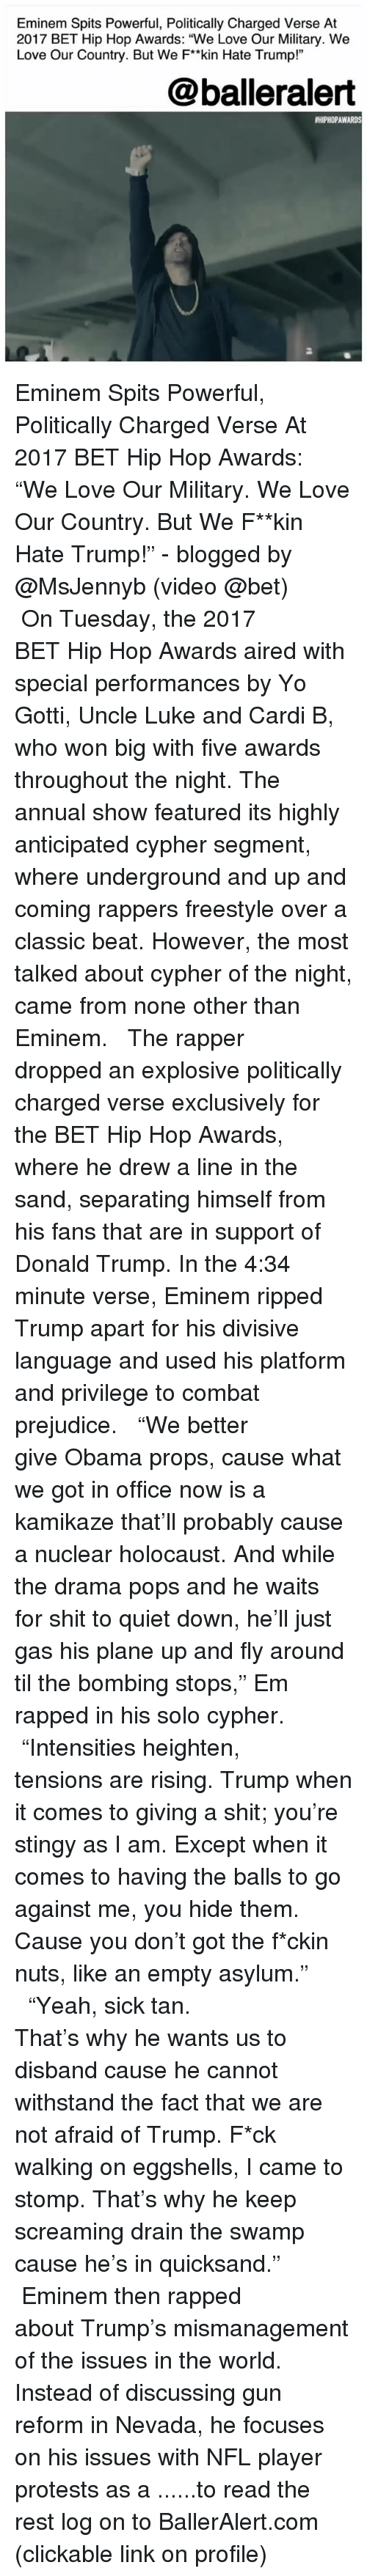 "quicksand: Eminem Spits Powerful, Politically Charged Verse At  2017 BET Hip Hop Awards: ""We Love Our Military. We  Love Our Country. But We F*kin Hate Trump!""  @balleralert  #HIPHOPAWARDS  2 Eminem Spits Powerful, Politically Charged Verse At 2017 BET Hip Hop Awards: ""We Love Our Military. We Love Our Country. But We F**kin Hate Trump!"" - blogged by @MsJennyb (video @bet) ⠀⠀⠀⠀⠀⠀⠀ ⠀⠀⠀⠀⠀⠀⠀ On Tuesday, the 2017 BET Hip Hop Awards aired with special performances by Yo Gotti, Uncle Luke and Cardi B, who won big with five awards throughout the night. The annual show featured its highly anticipated cypher segment, where underground and up and coming rappers freestyle over a classic beat. However, the most talked about cypher of the night, came from none other than Eminem. ⠀⠀⠀⠀⠀⠀⠀ ⠀⠀⠀⠀⠀⠀⠀ The rapper dropped an explosive politically charged verse exclusively for the BET Hip Hop Awards, where he drew a line in the sand, separating himself from his fans that are in support of Donald Trump. In the 4:34 minute verse, Eminem ripped Trump apart for his divisive language and used his platform and privilege to combat prejudice. ⠀⠀⠀⠀⠀⠀⠀ ⠀⠀⠀⠀⠀⠀⠀ ""We better give Obama props, cause what we got in office now is a kamikaze that'll probably cause a nuclear holocaust. And while the drama pops and he waits for shit to quiet down, he'll just gas his plane up and fly around til the bombing stops,"" Em rapped in his solo cypher. ⠀⠀⠀⠀⠀⠀⠀ ⠀⠀⠀⠀⠀⠀⠀ ""Intensities heighten, tensions are rising. Trump when it comes to giving a shit; you're stingy as I am. Except when it comes to having the balls to go against me, you hide them. Cause you don't got the f*ckin nuts, like an empty asylum."" ⠀⠀⠀⠀⠀⠀⠀ ⠀⠀⠀⠀⠀⠀⠀ ""Yeah, sick tan. That's why he wants us to disband cause he cannot withstand the fact that we are not afraid of Trump. F*ck walking on eggshells, I came to stomp. That's why he keep screaming drain the swamp cause he's in quicksand."" ⠀⠀⠀⠀⠀⠀⠀ ⠀⠀⠀⠀⠀⠀⠀ Eminem then rapped about Trump's mismanagement of the issues in the world. Instead of discussing gun reform in Nevada, he focuses on his issues with NFL player protests as a ......to read the rest log on to BallerAlert.com (clickable link on profile)"